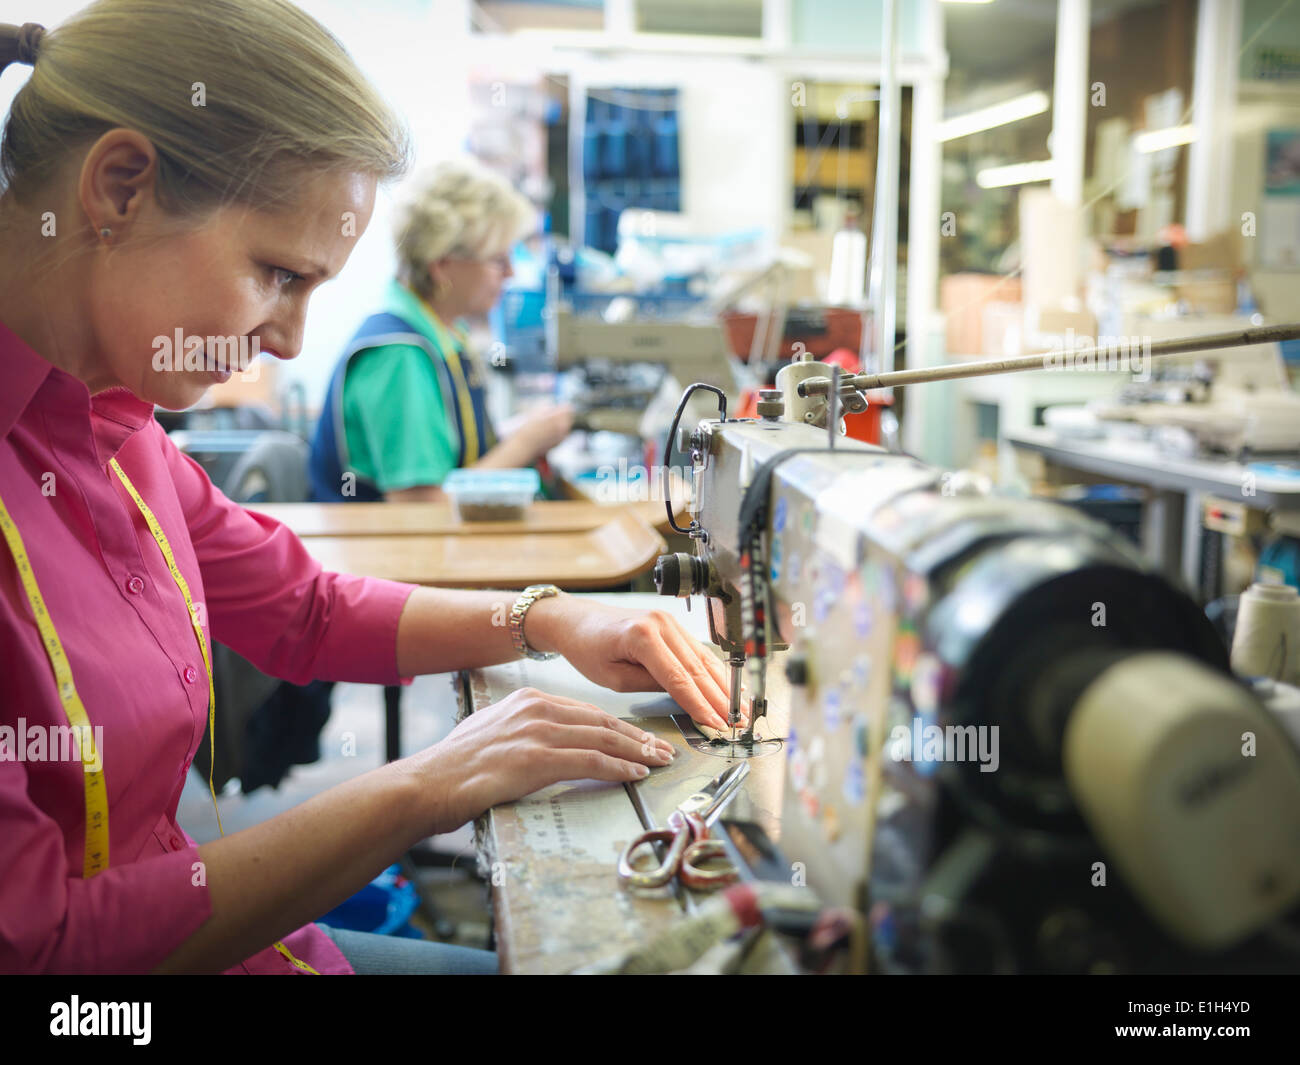 Worker sewing in clothing factory - Stock Image